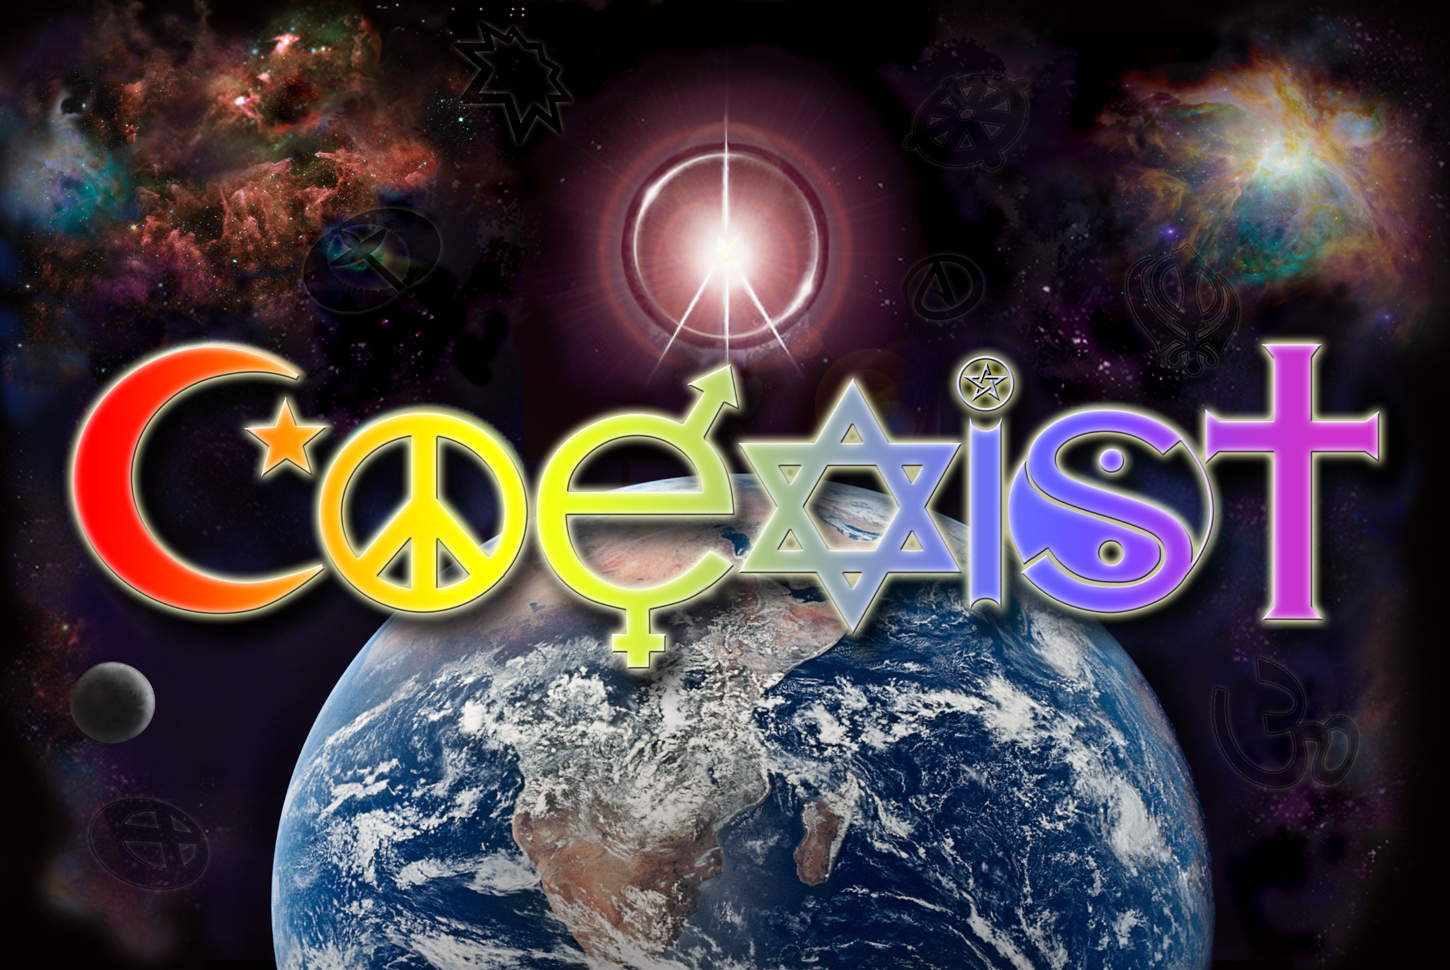 The Coexist Movement Universalism And The One World Religion A